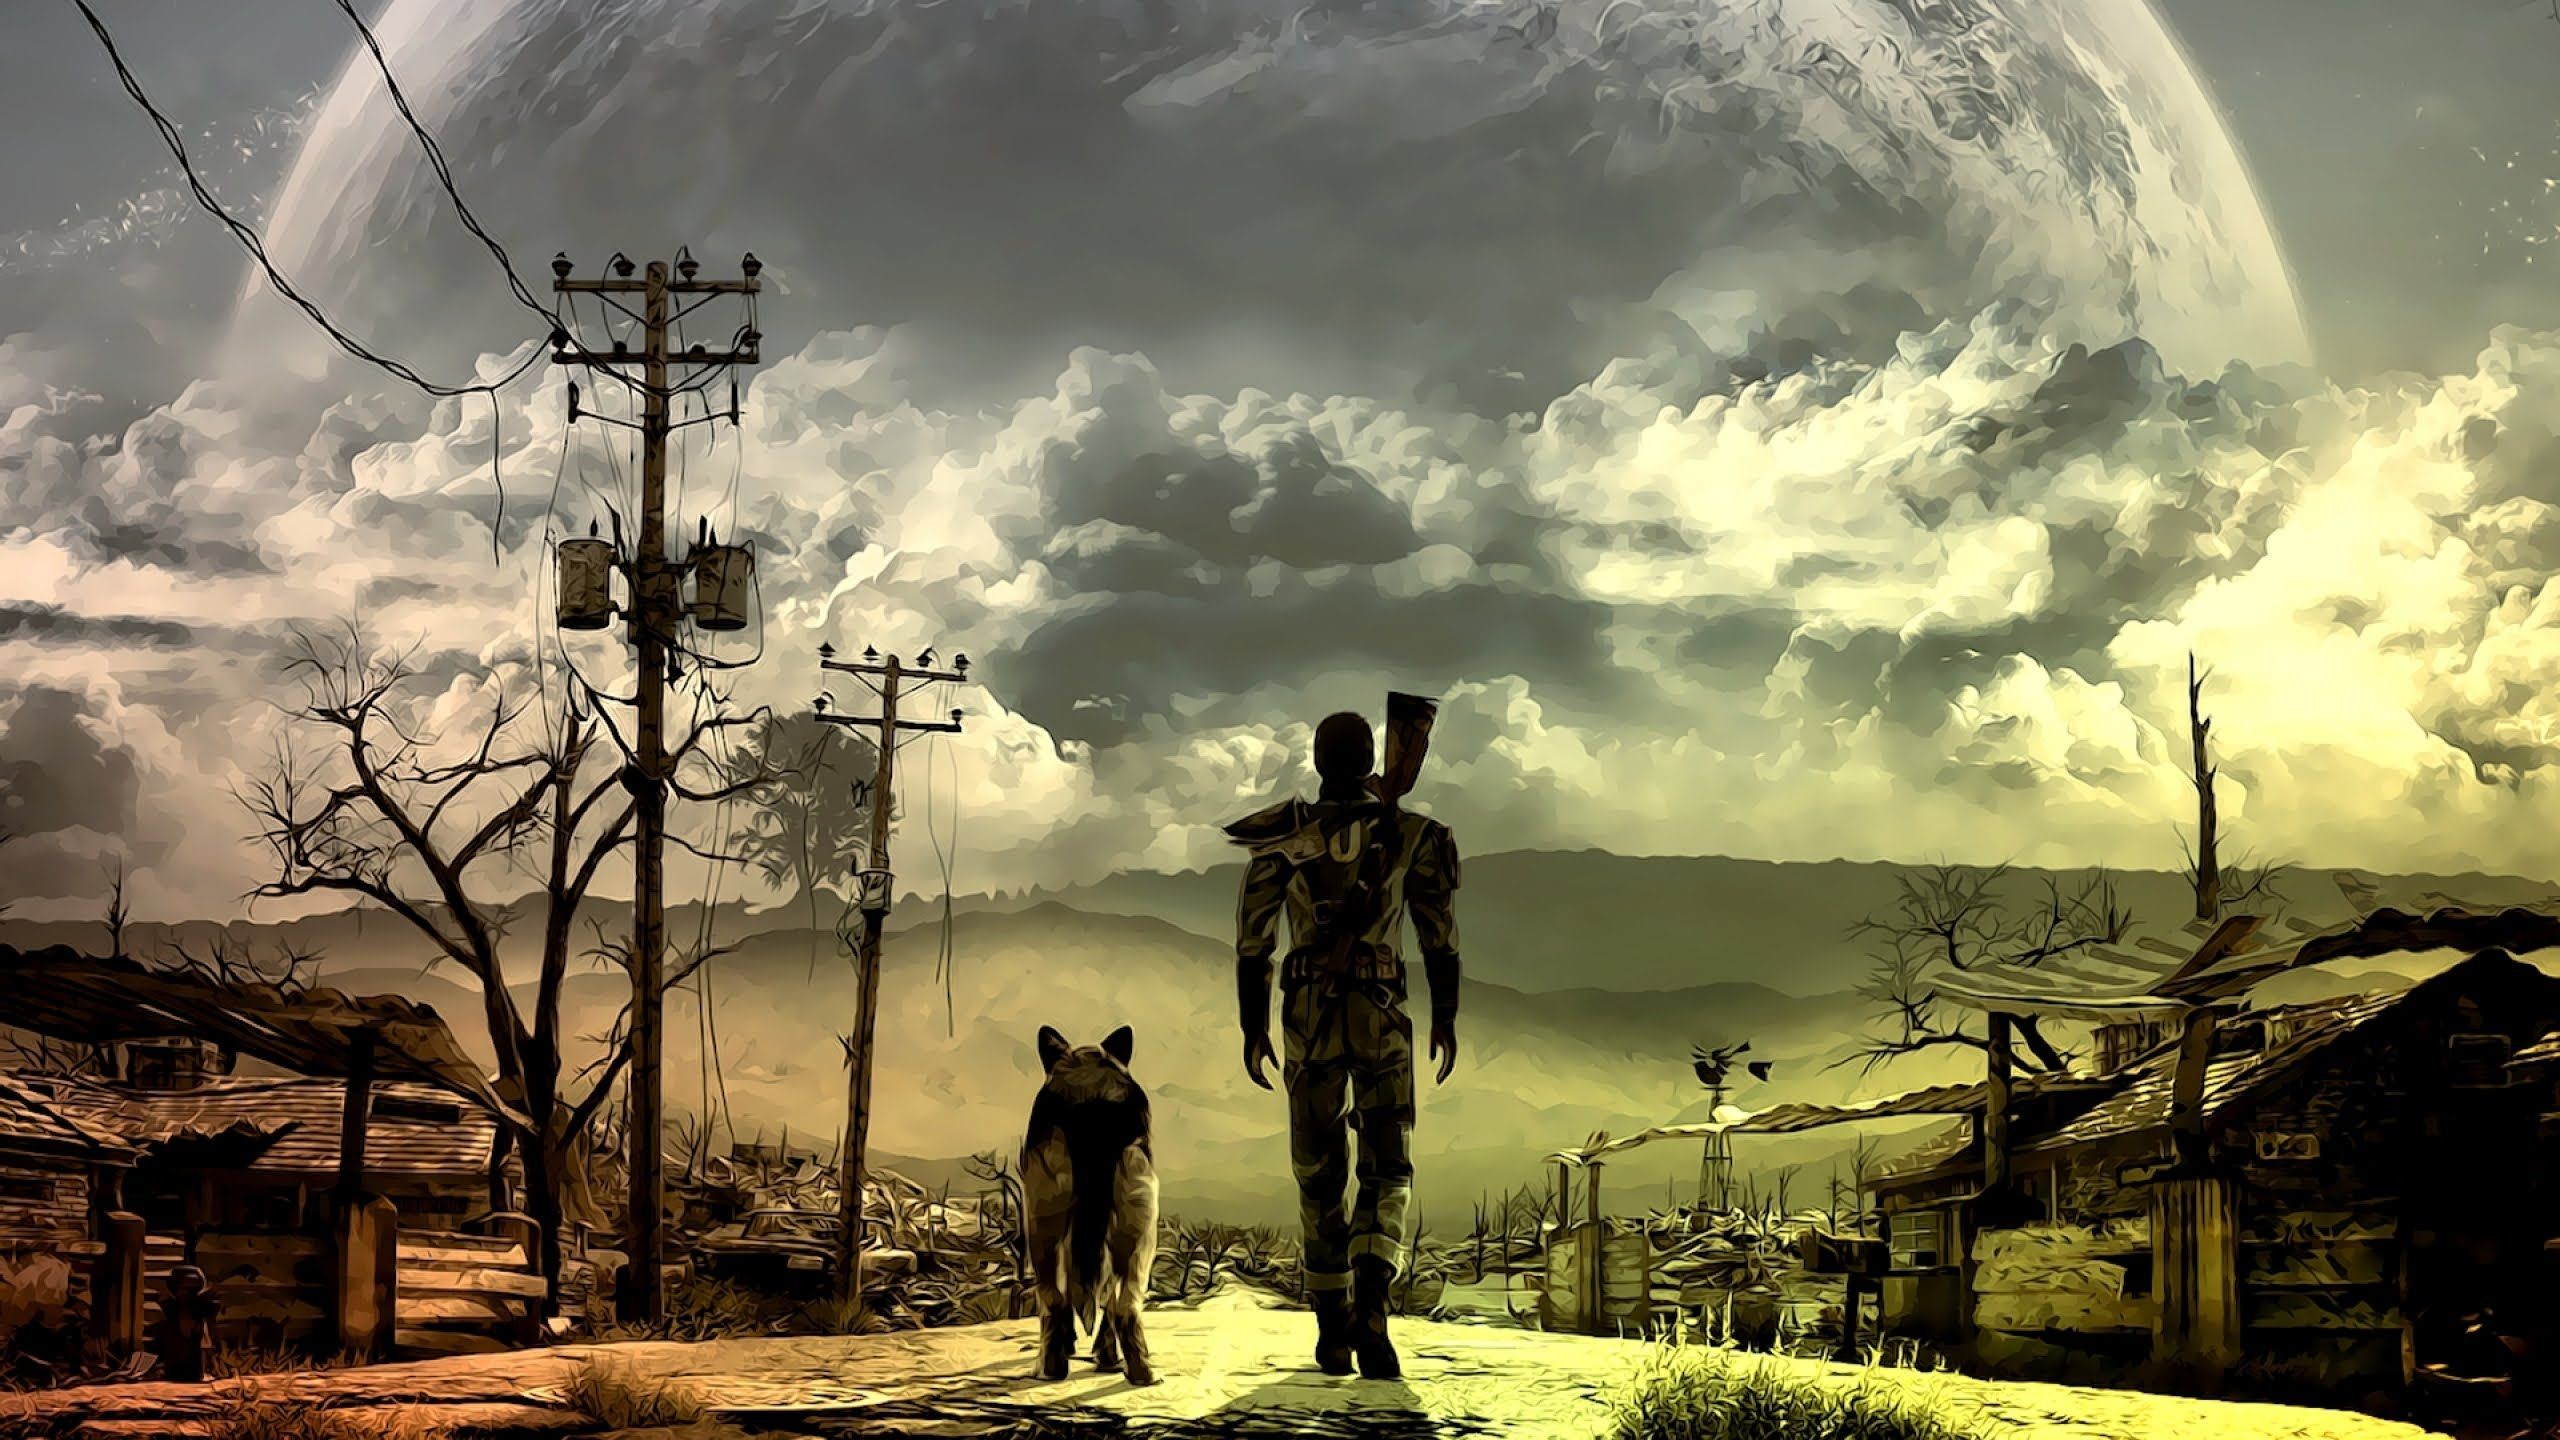 38 Fallout 4 Backgrounds Download Free Awesome Backgrounds For